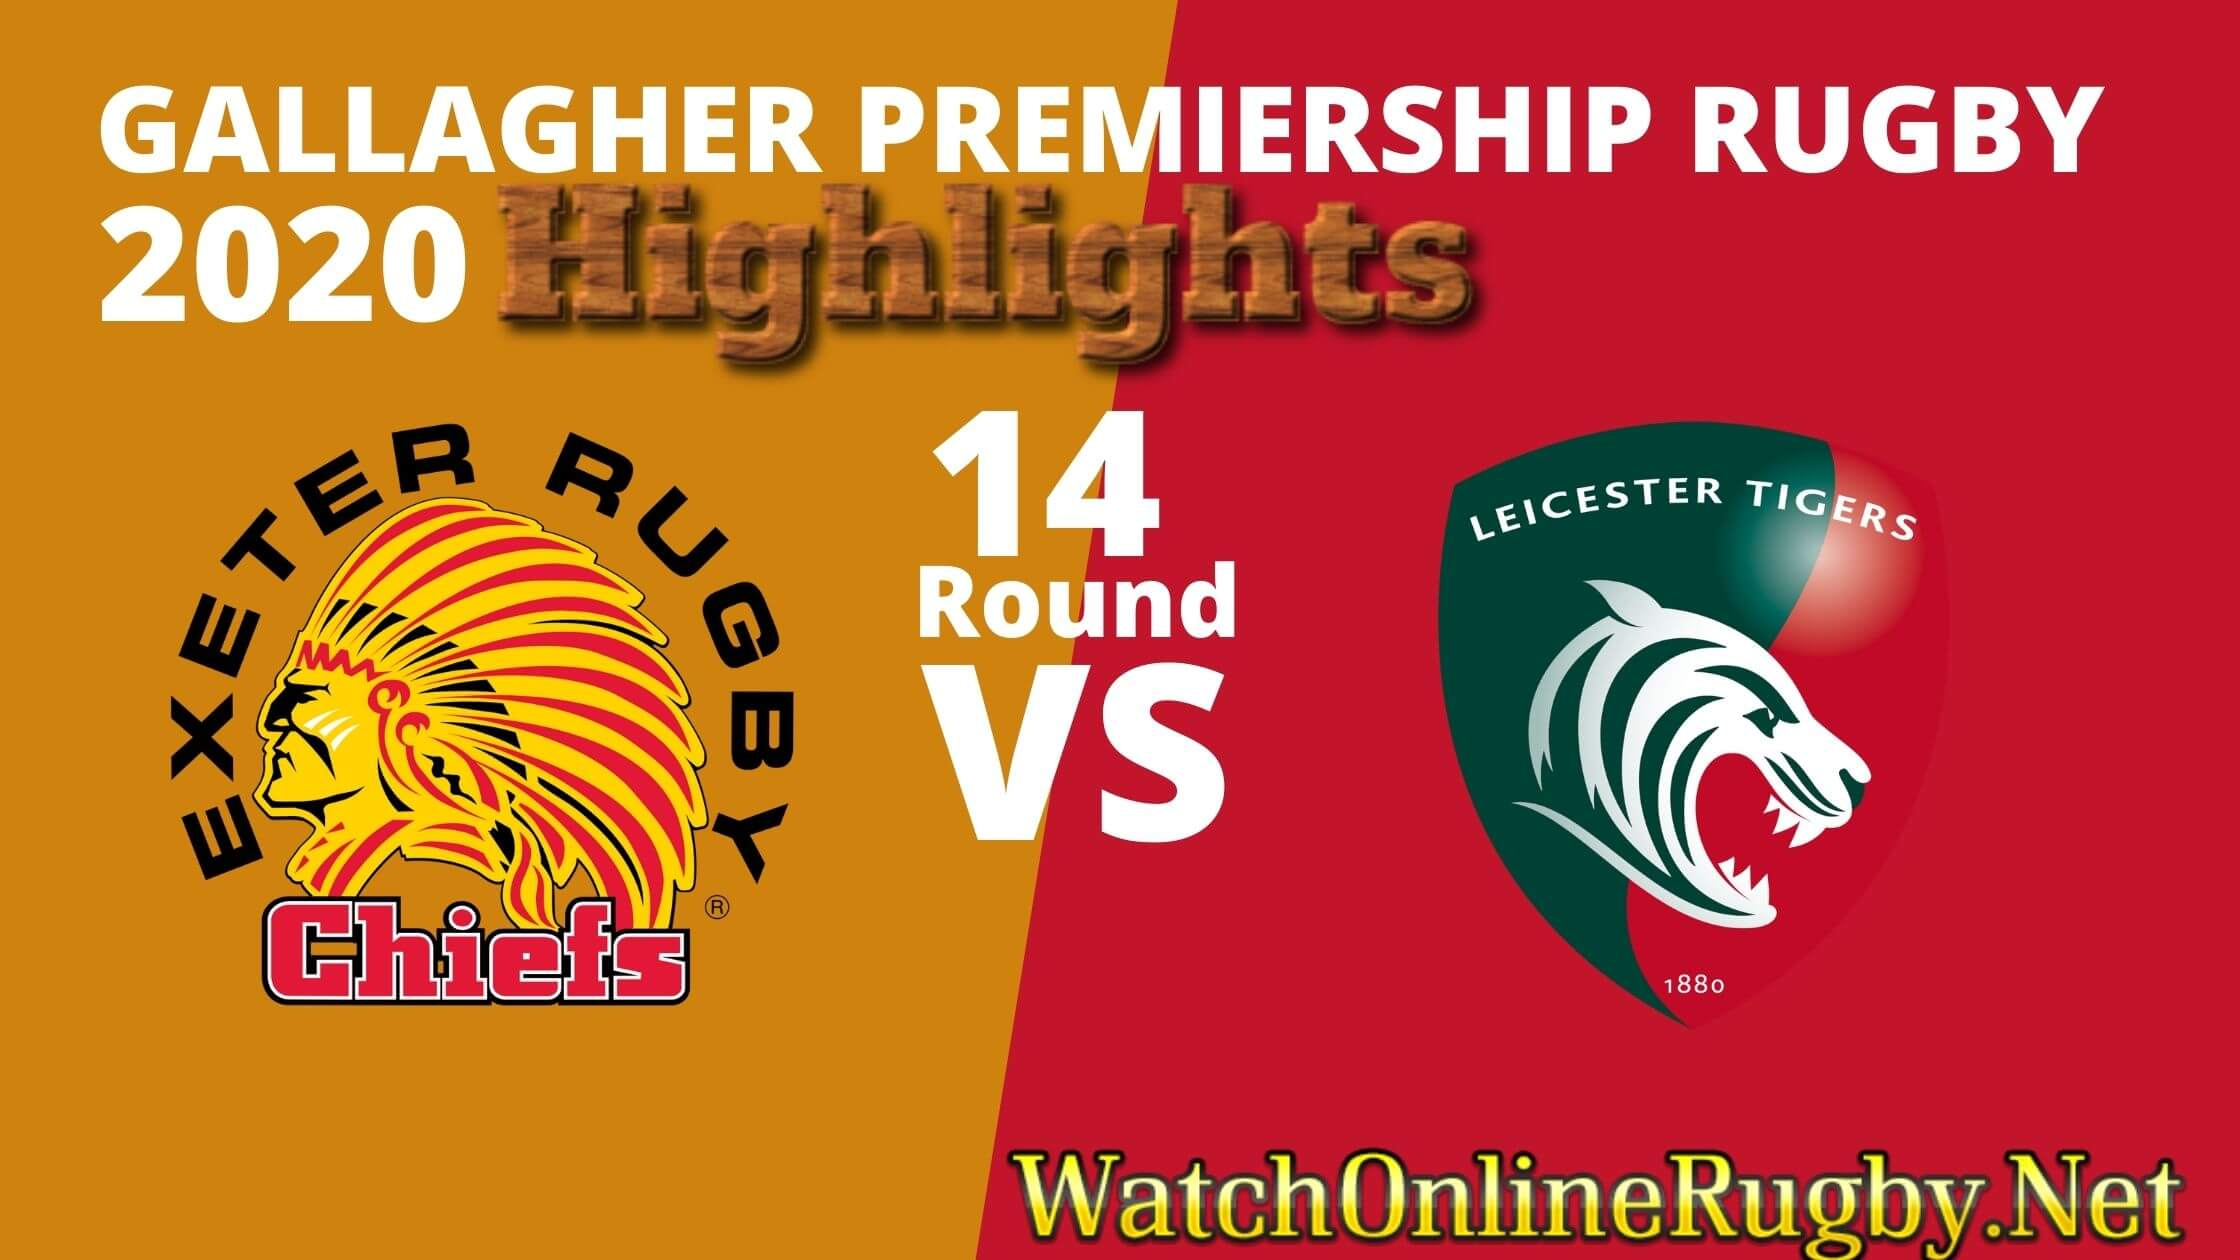 Exeter Chiefs Vs Leicester Tigers Highlights 2020 Rd 14 Premiership Rugby